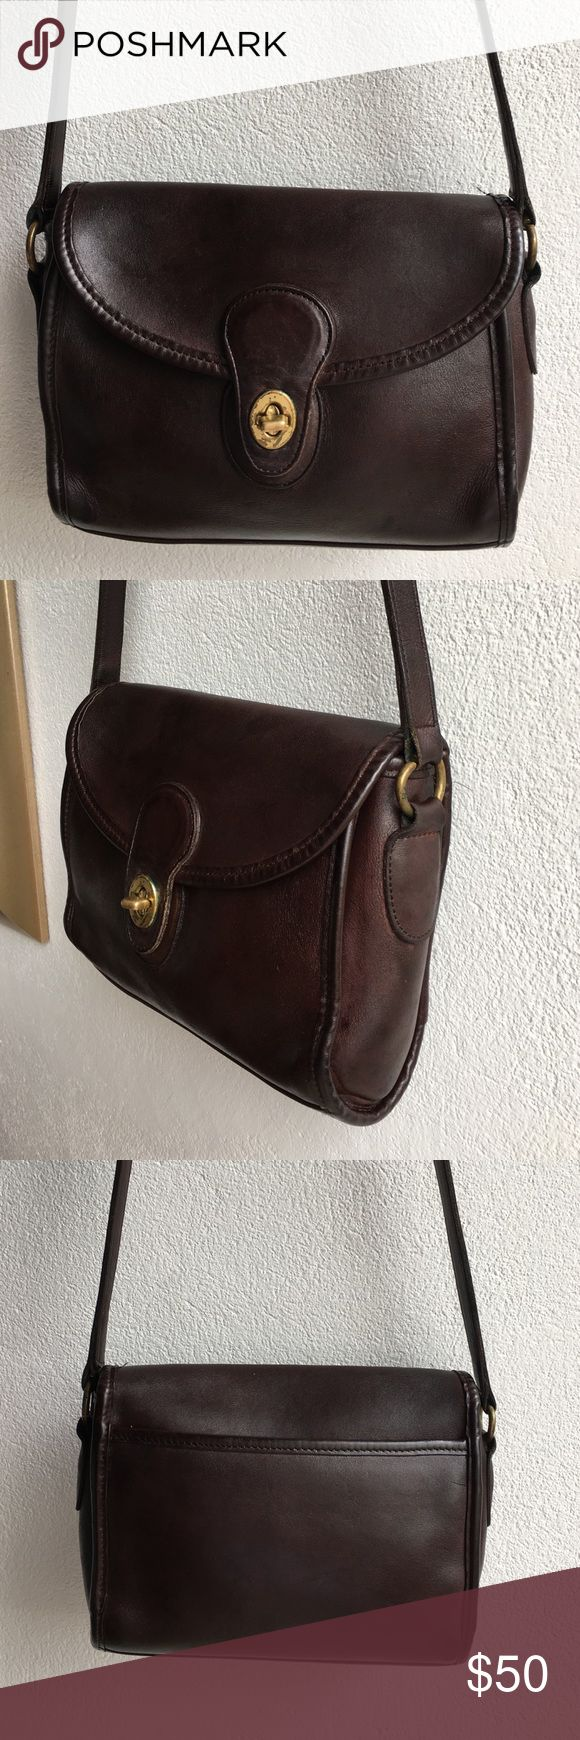 Vintage Coach Legacy Brown Crossbody Bag Vintage Authentic Coach Legacy Brown Crossbody Bag. Signs of wear and patina given bags age. Please look at pictures for better reference. Happy shopping!! Coach Bags Crossbody Bags